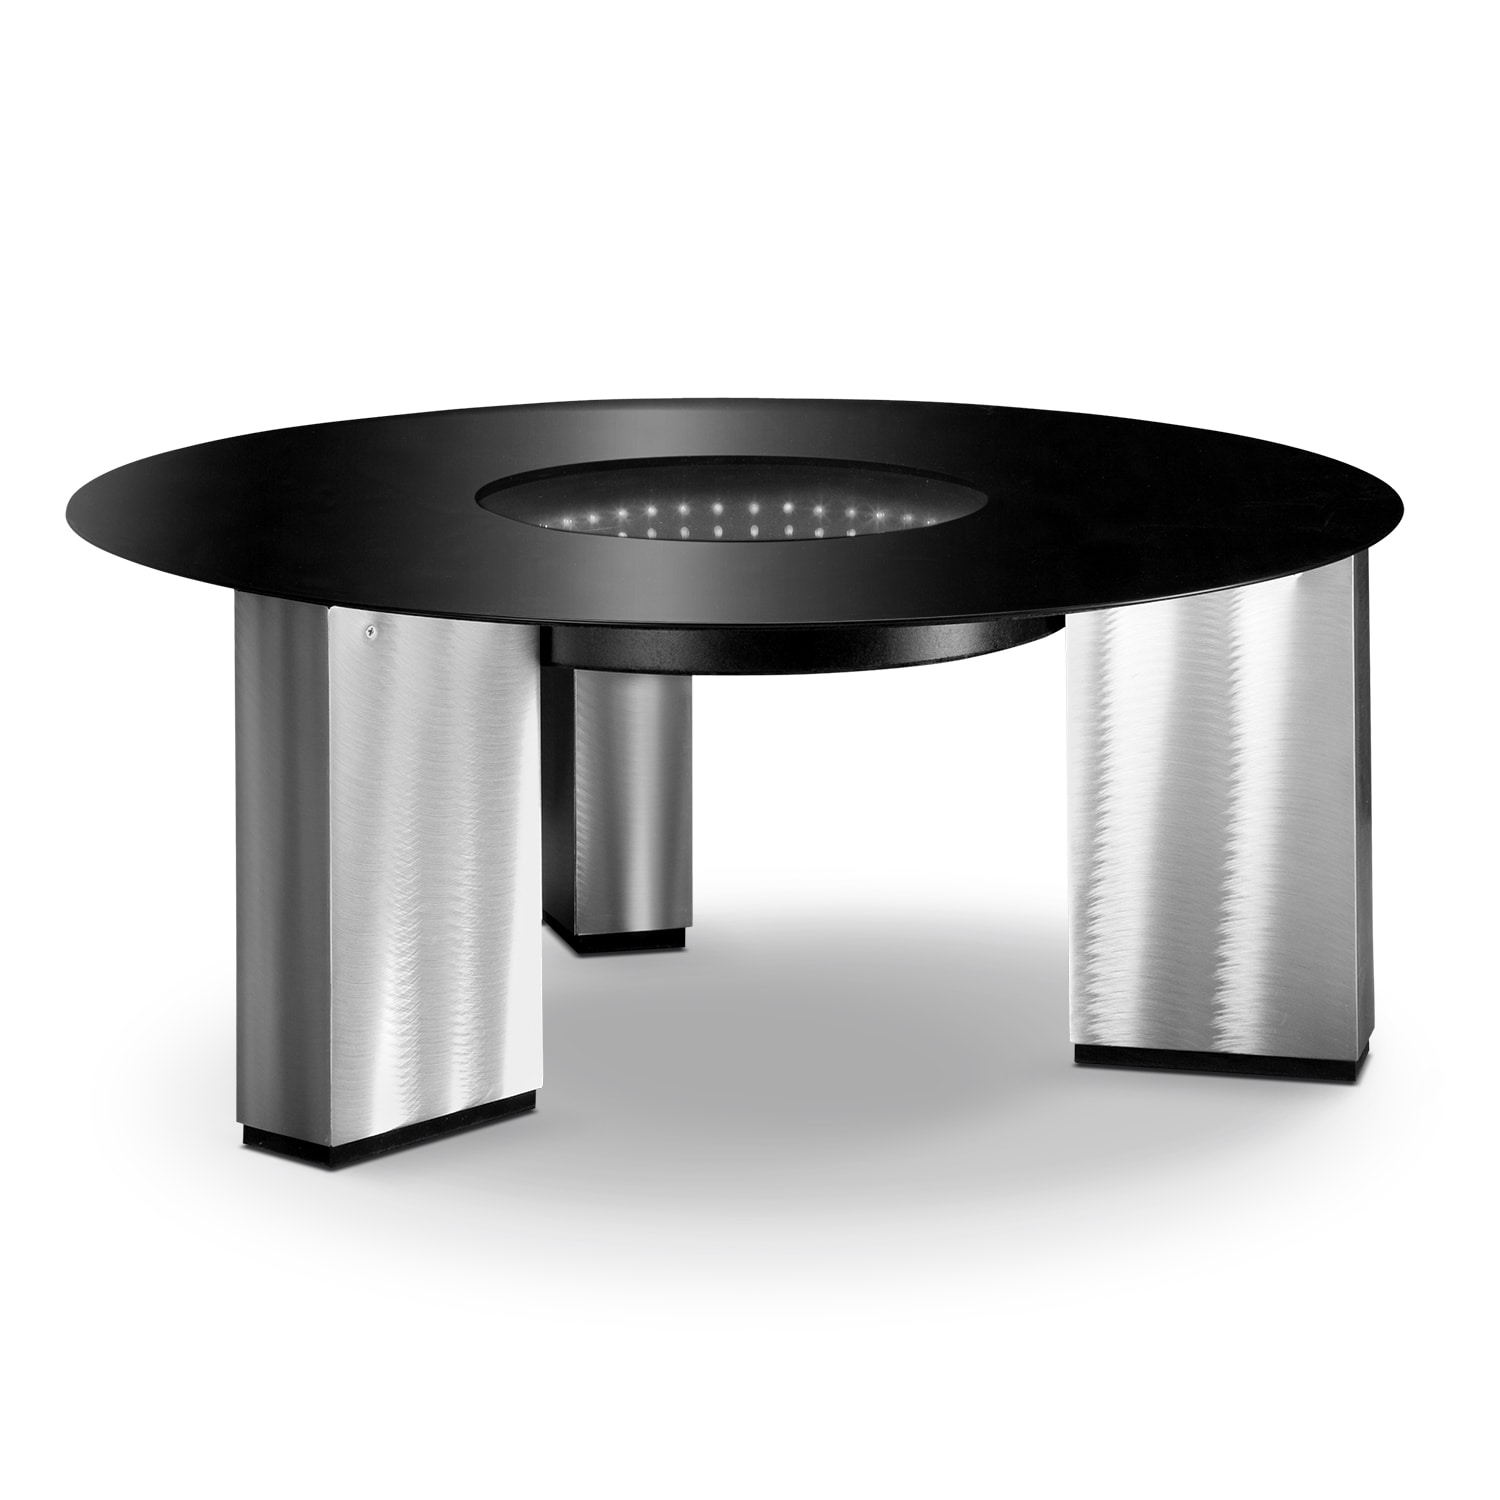 City Lights Cocktail Table - Silver And Black